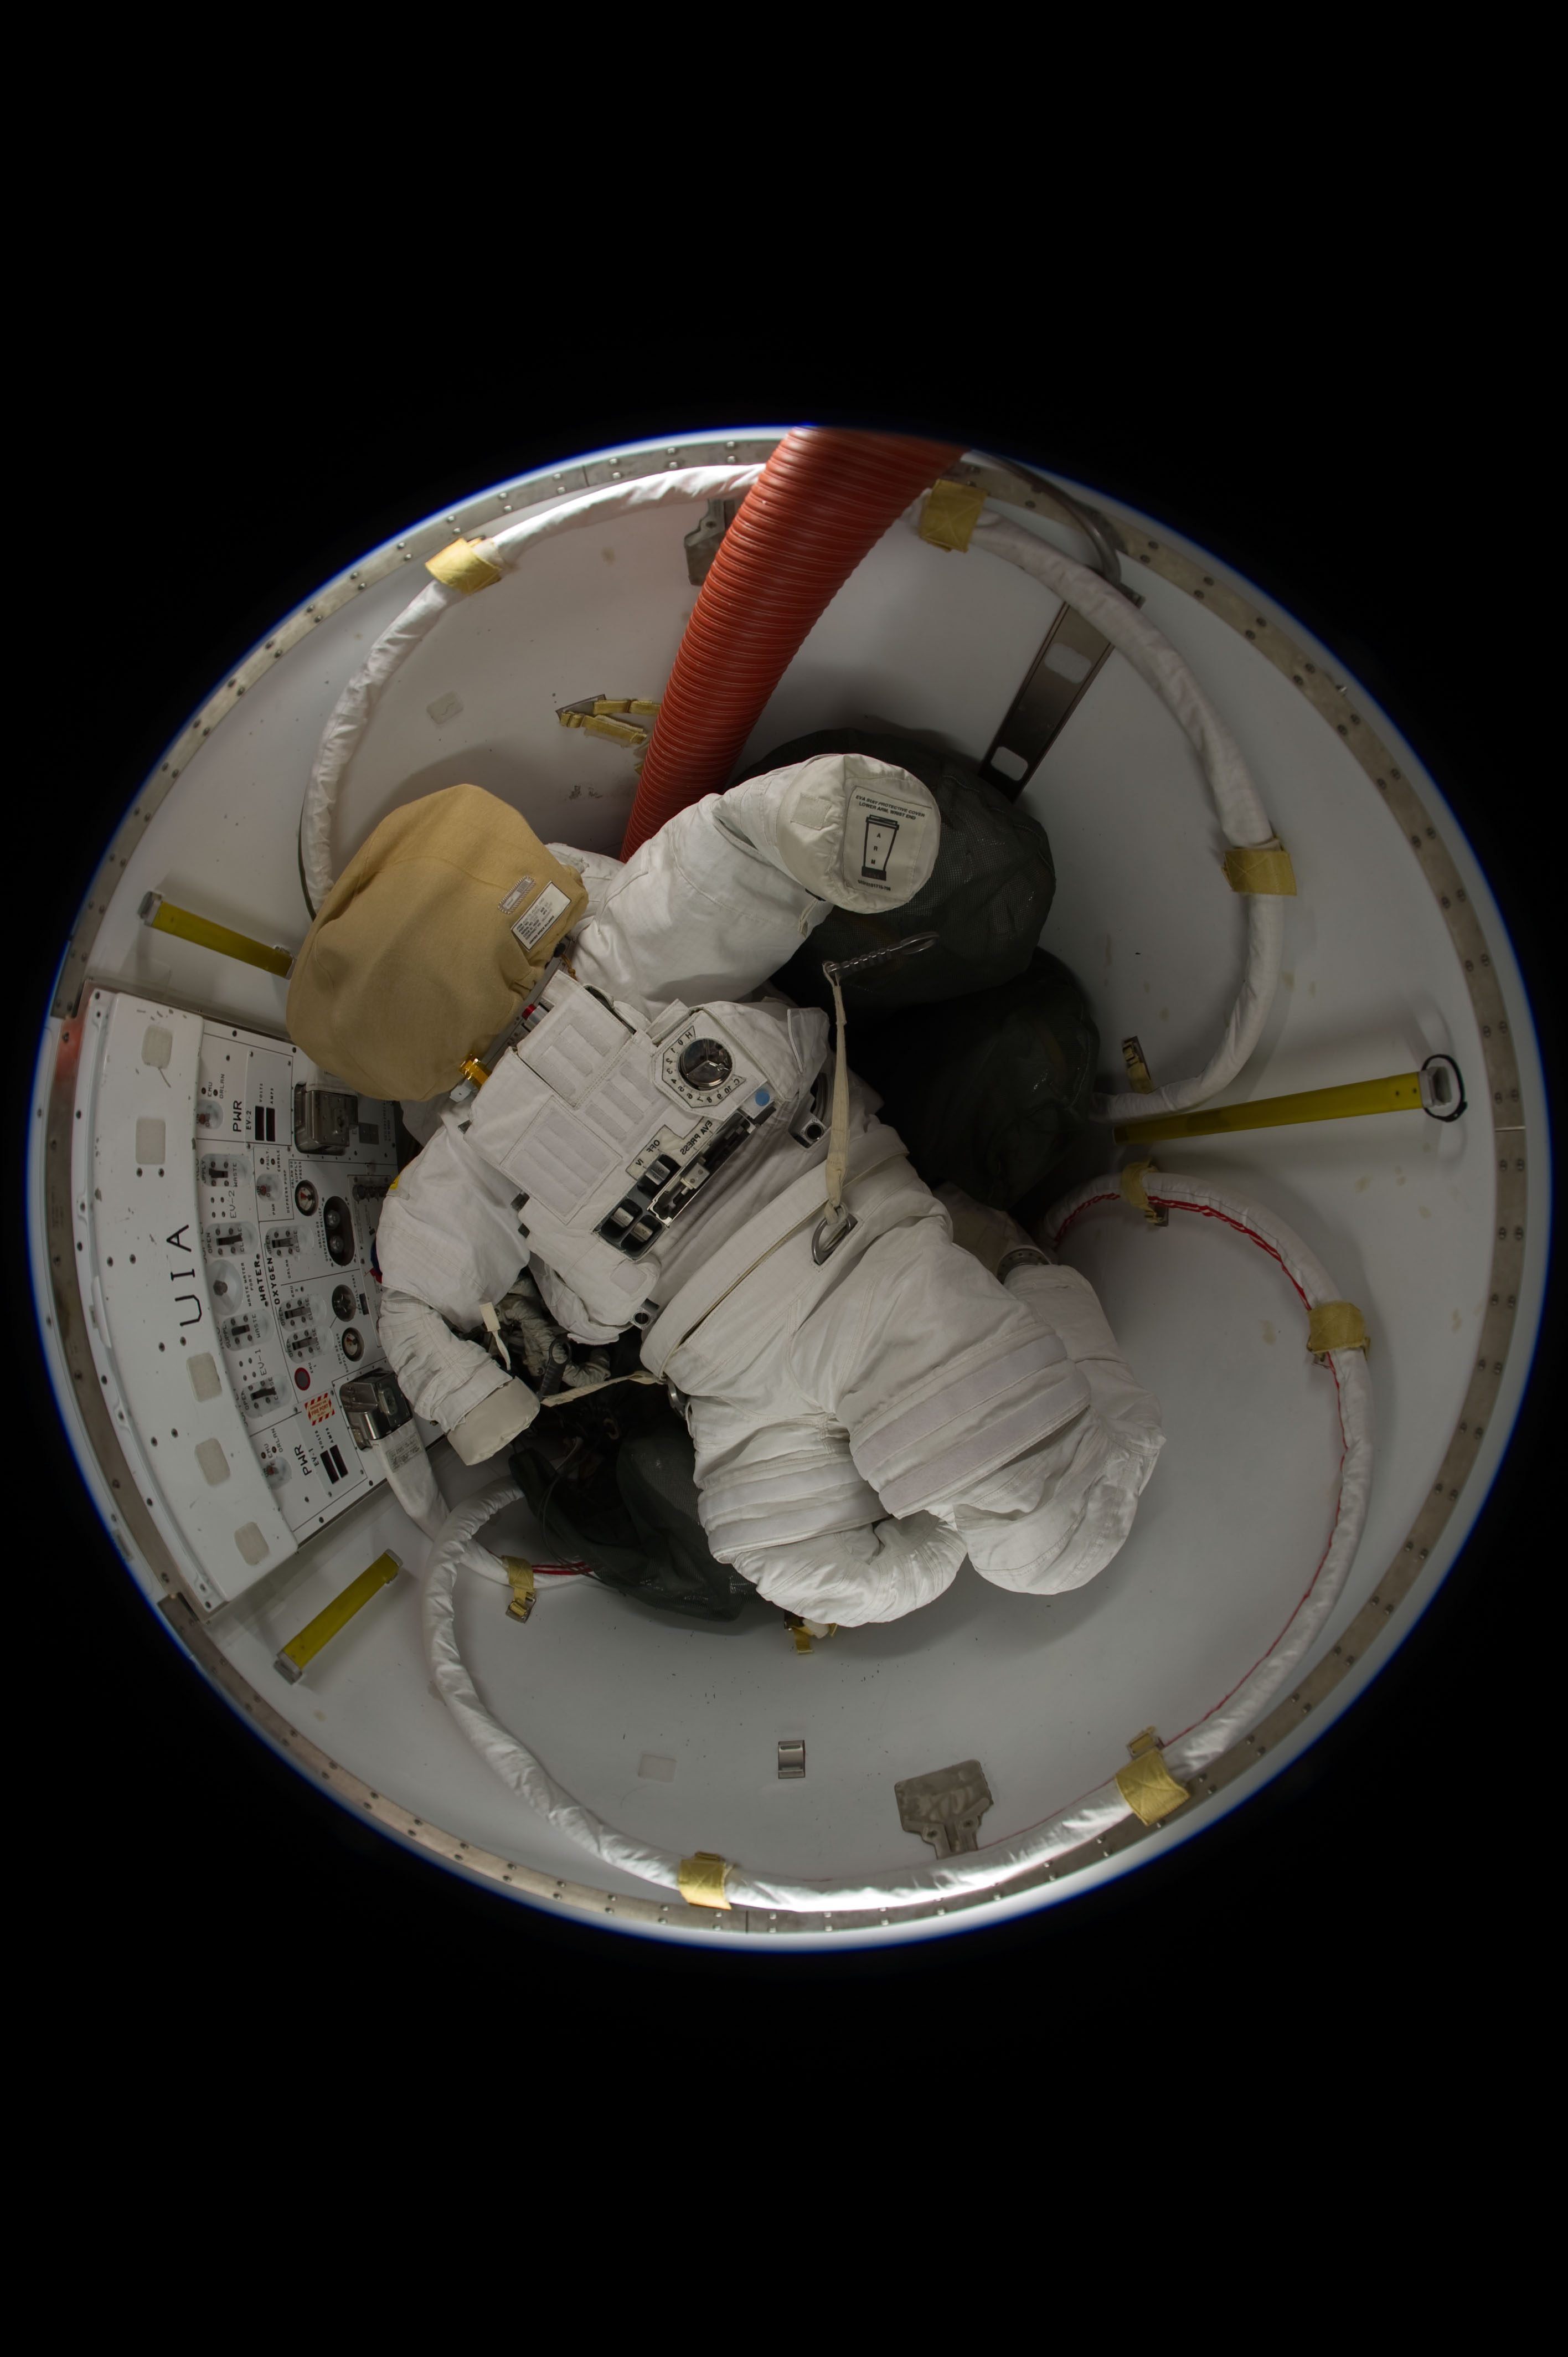 Expedition 31 Spacesuit